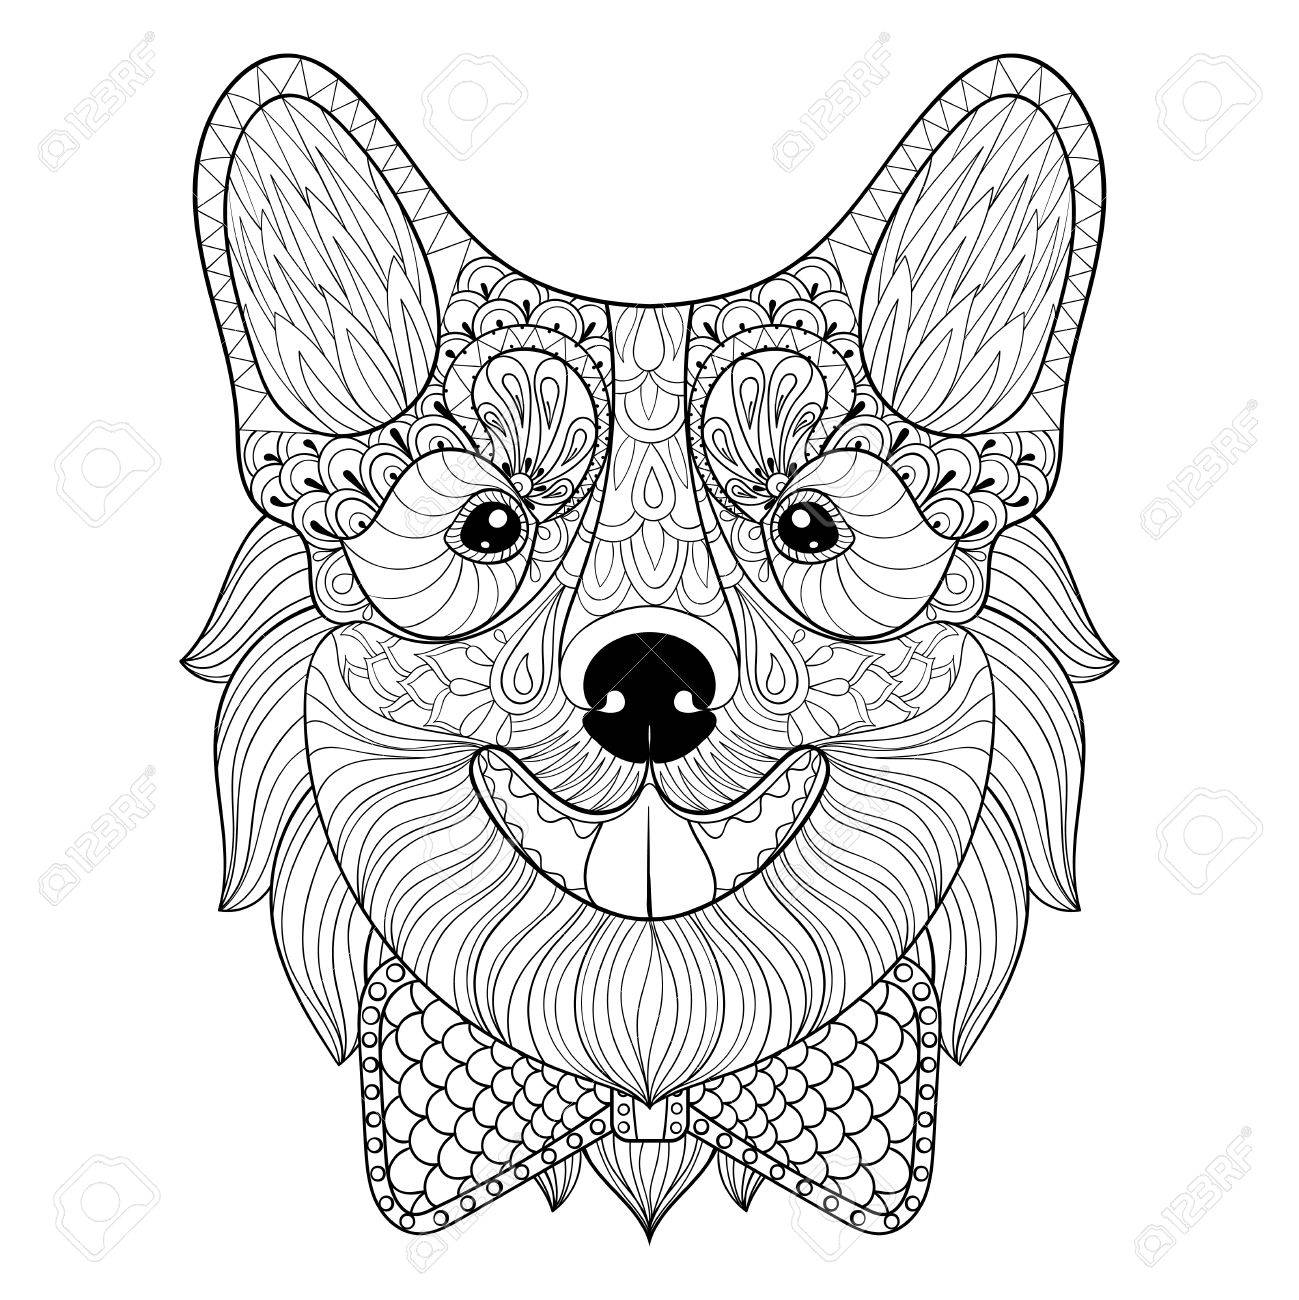 1299x1300 Welsh Corgi With Bow Tie In Monochrome Doodle Style. Puppy